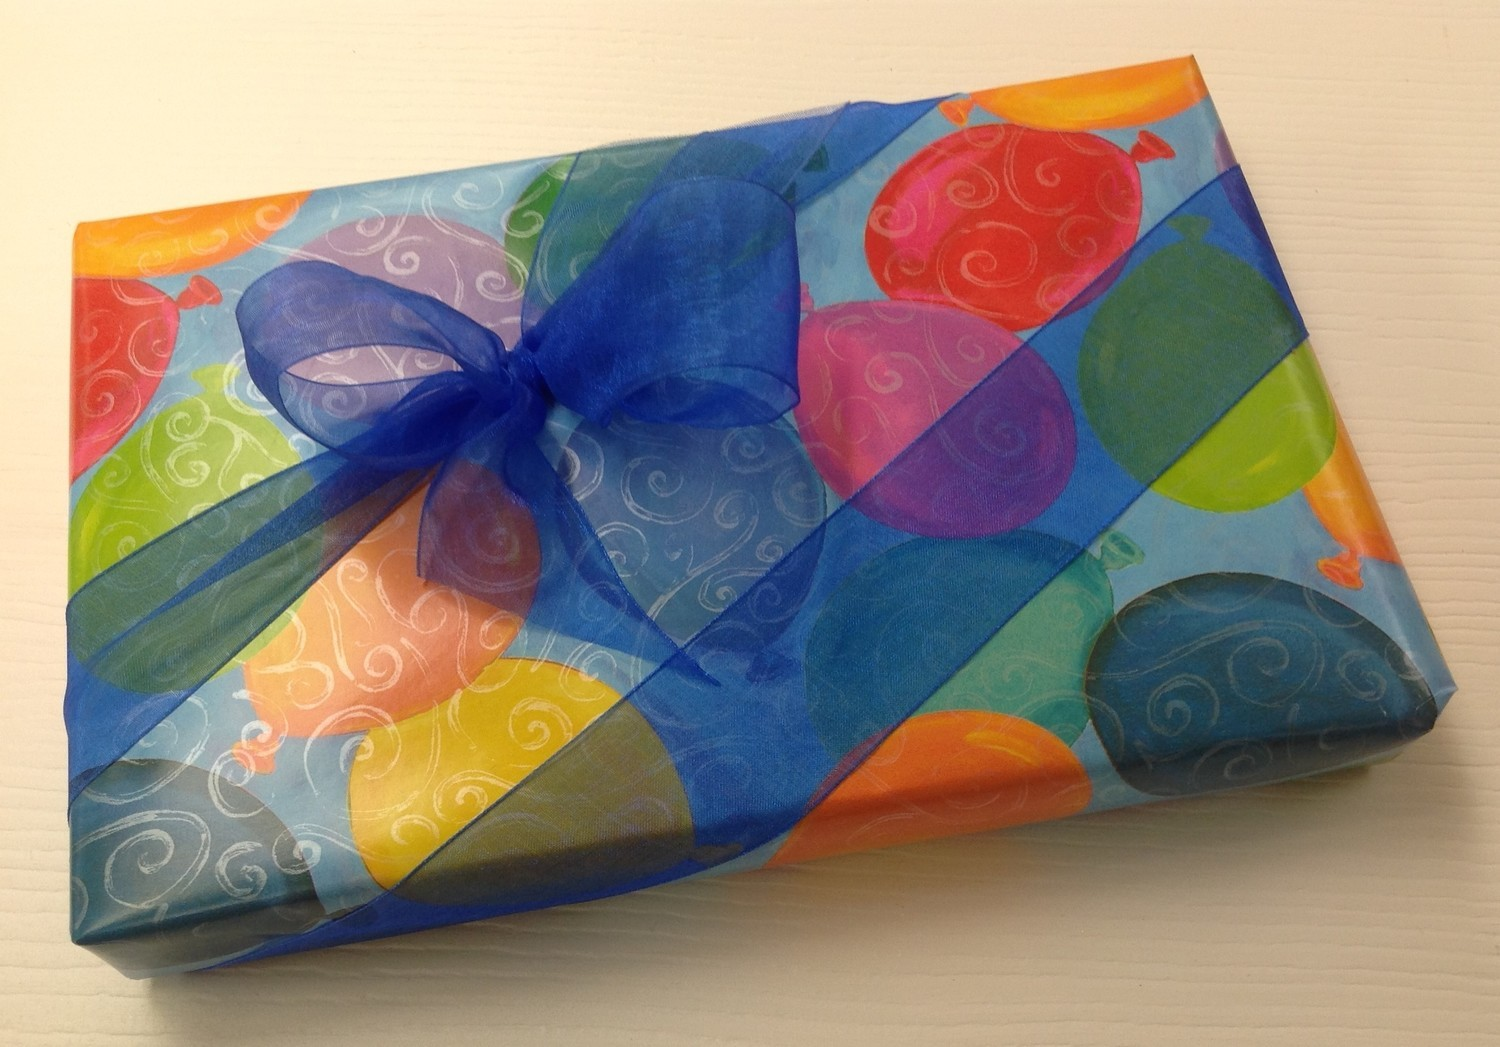 Happy Birthday Chocolate Assortments wrapped with bow.